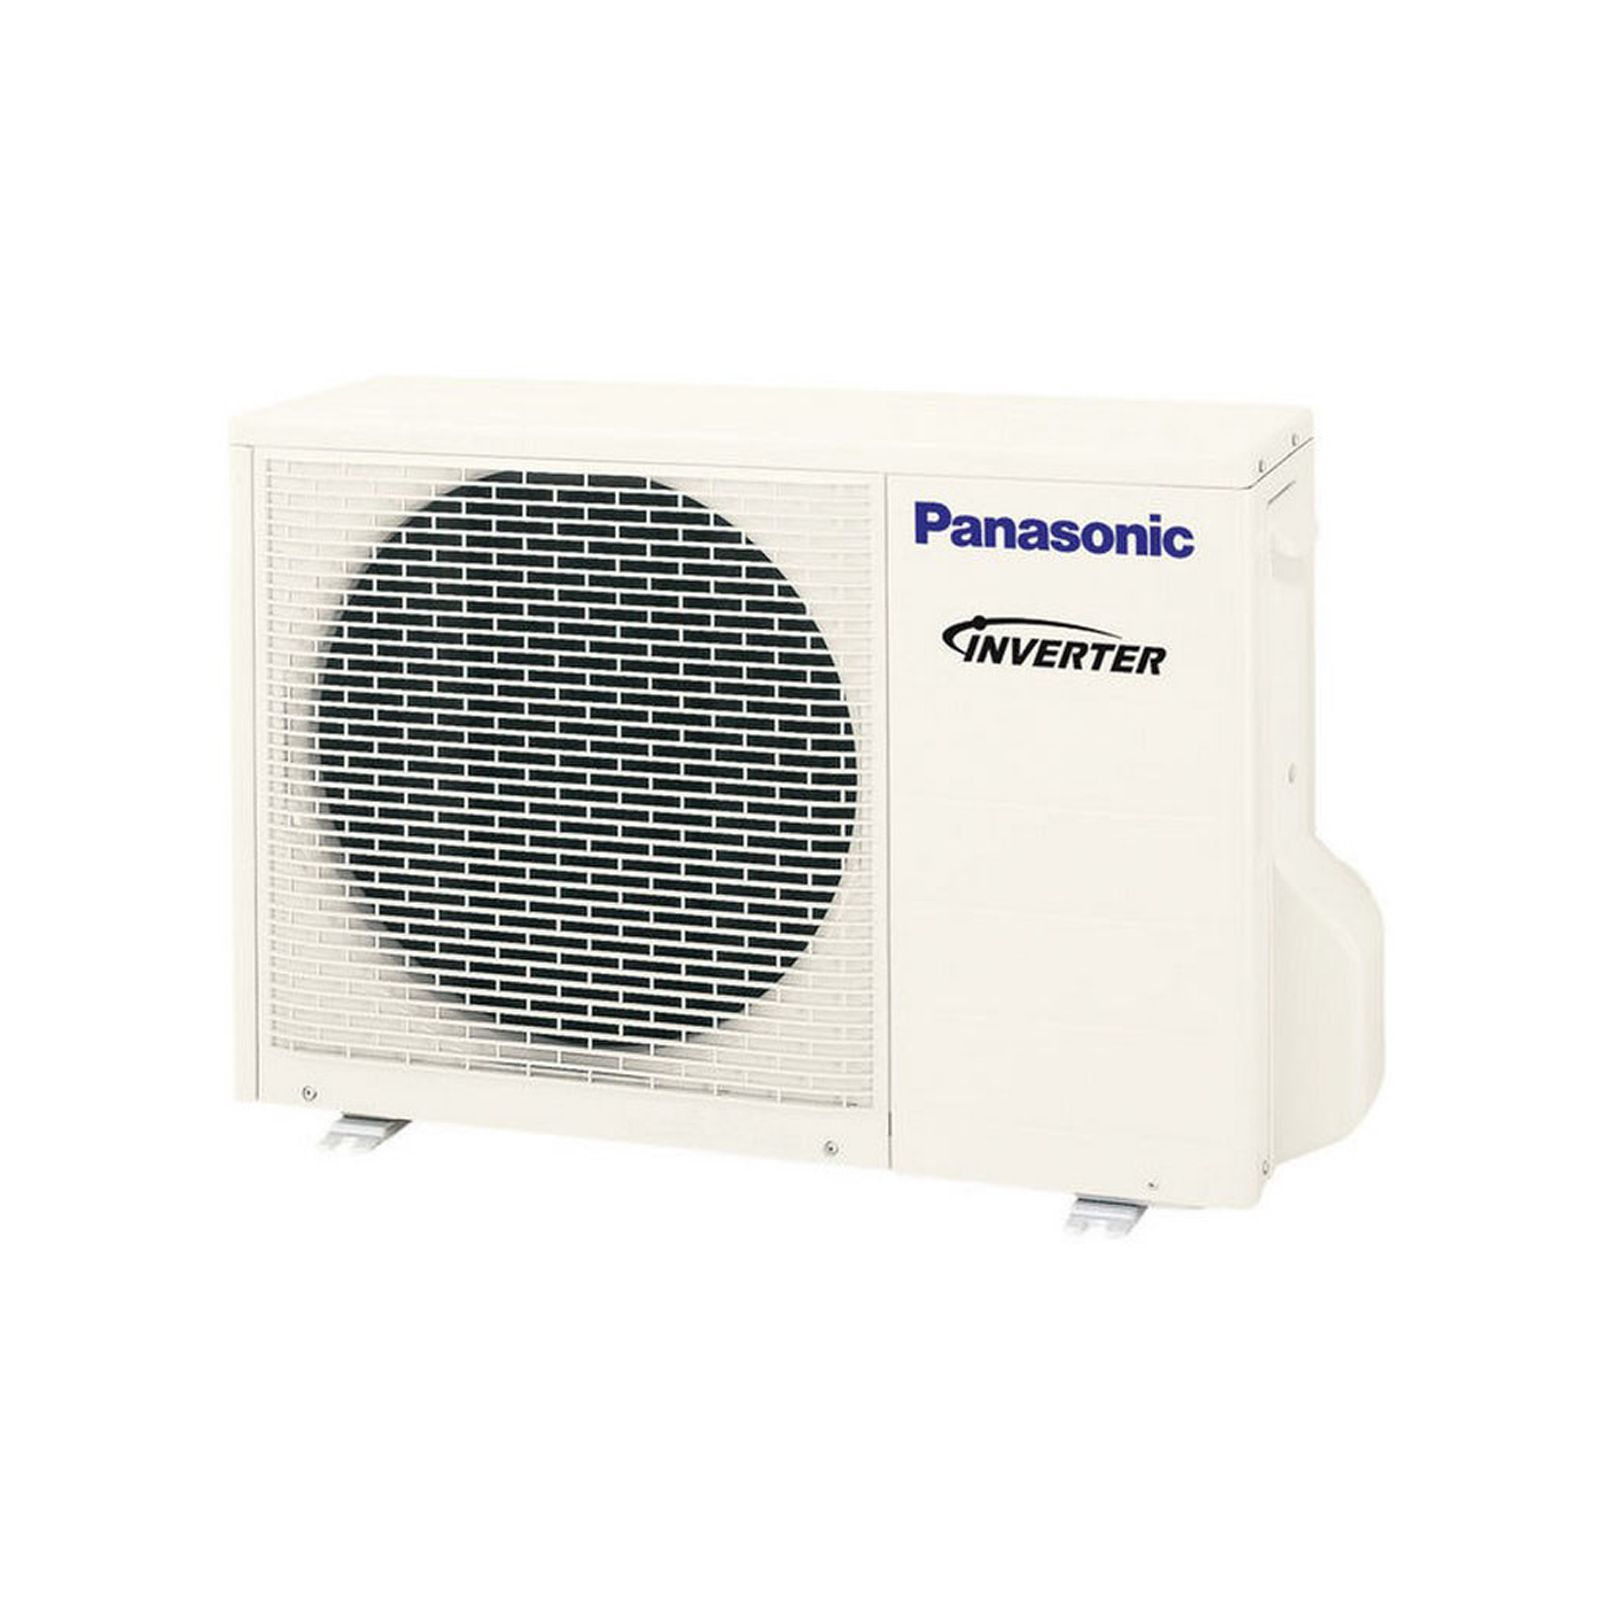 Panasonic CU-RE12SKUA - 12K BTU/H Outdoor Condenser Heat Pump, 16 SEER, 208-230/1/60